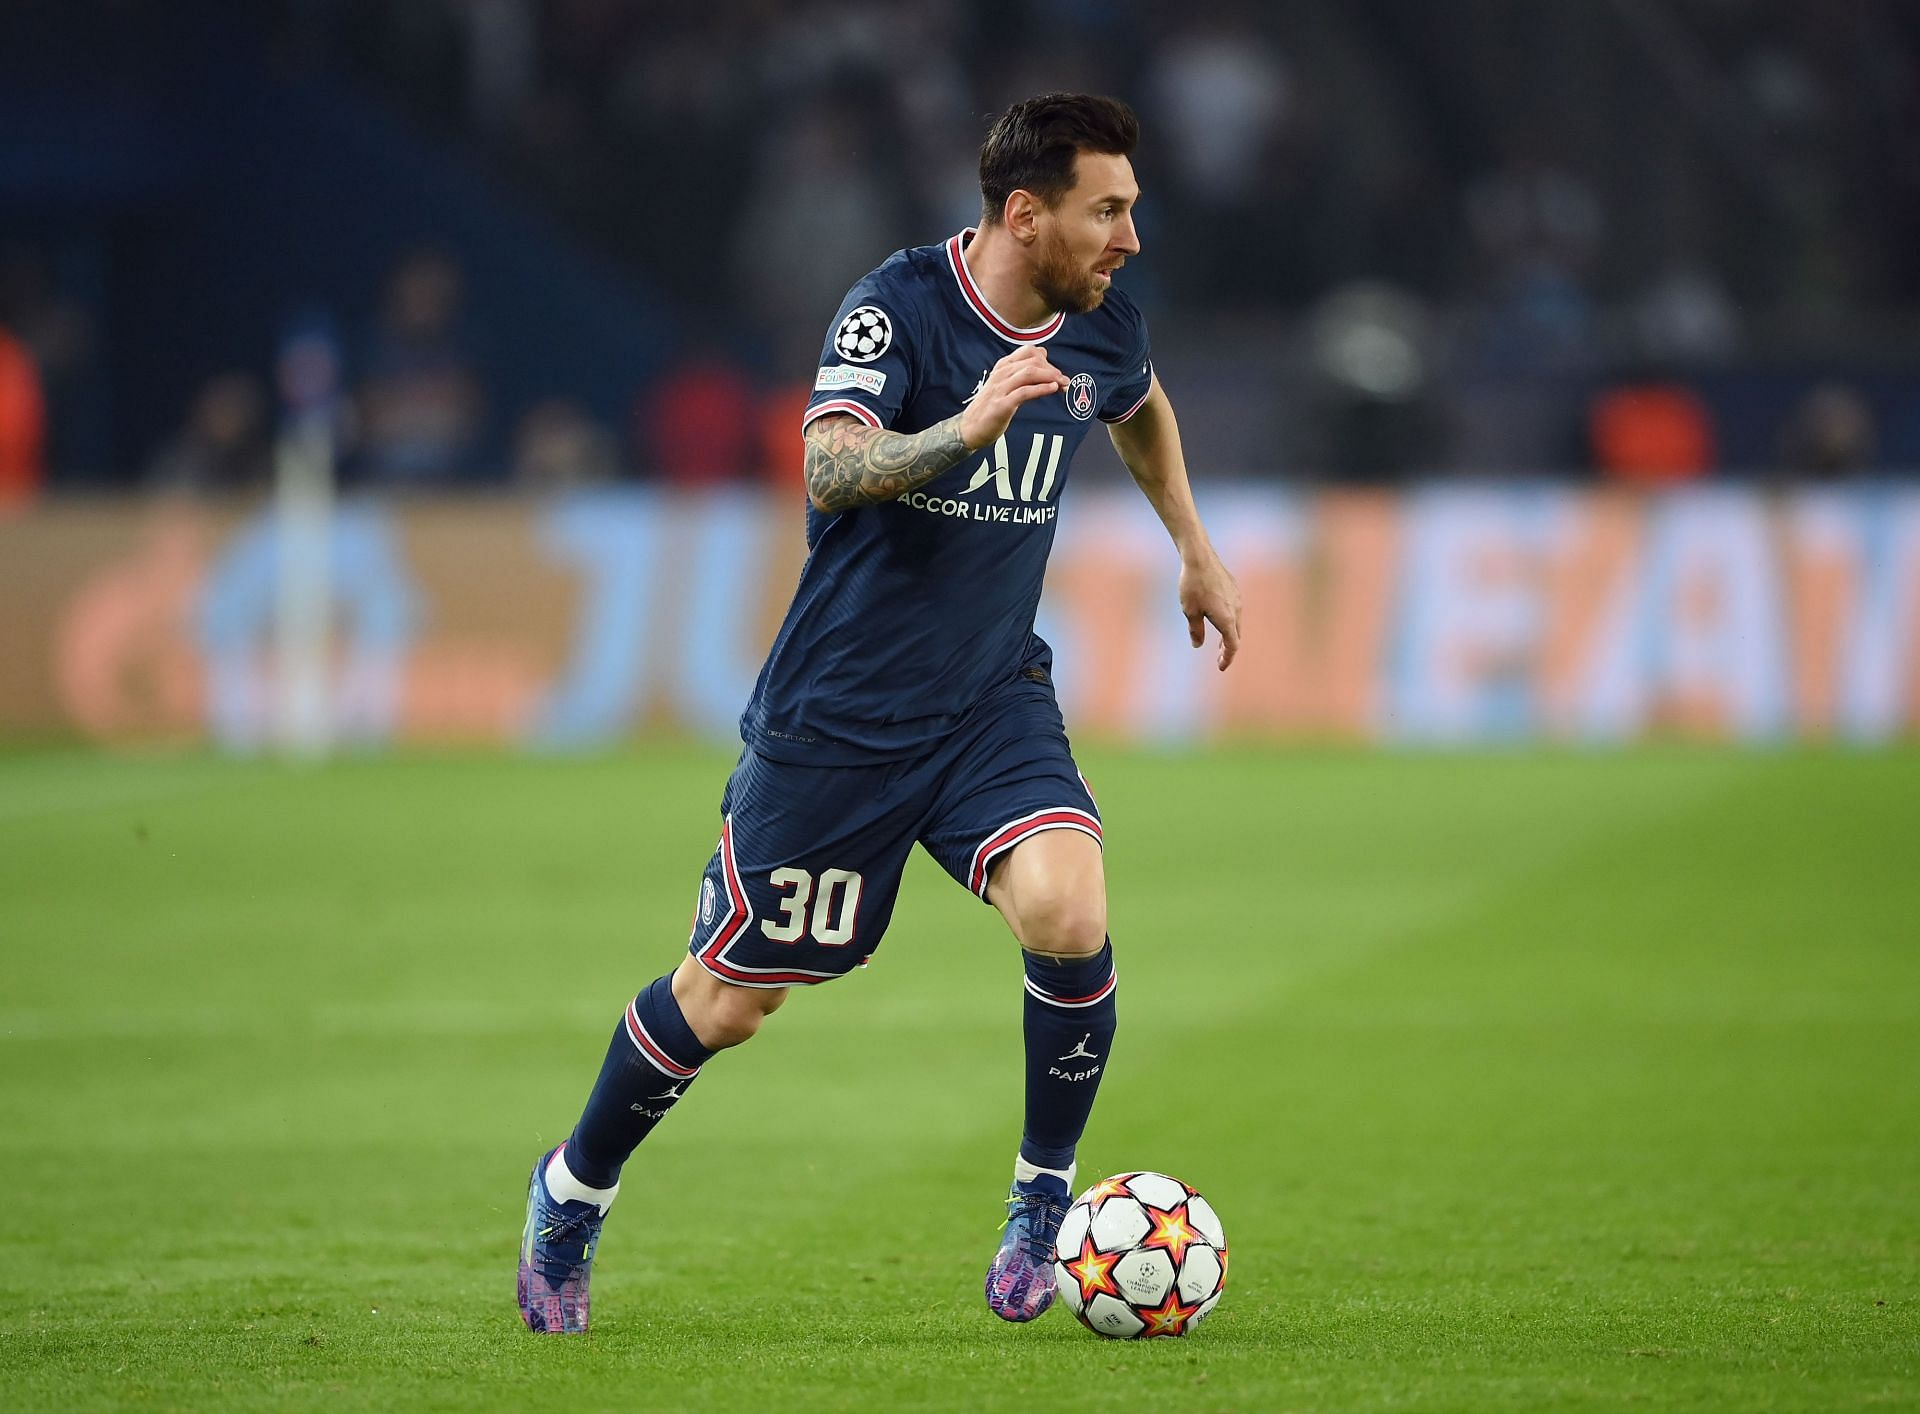 Lionel Messi in action for PSG